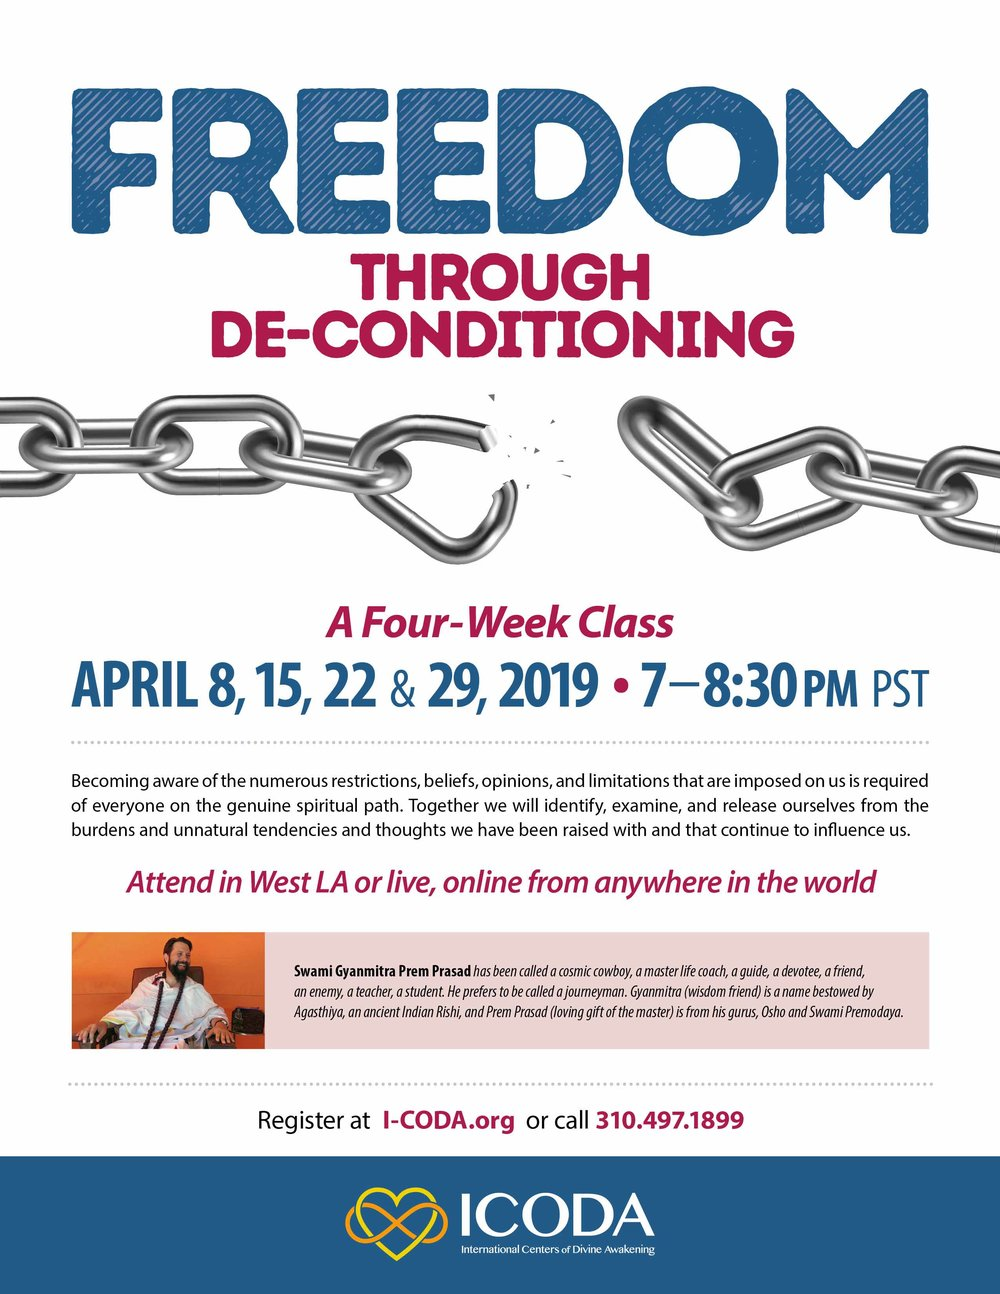 04 Apr FreedomDeconditioning Flyer 012919 EMAIL.jpg